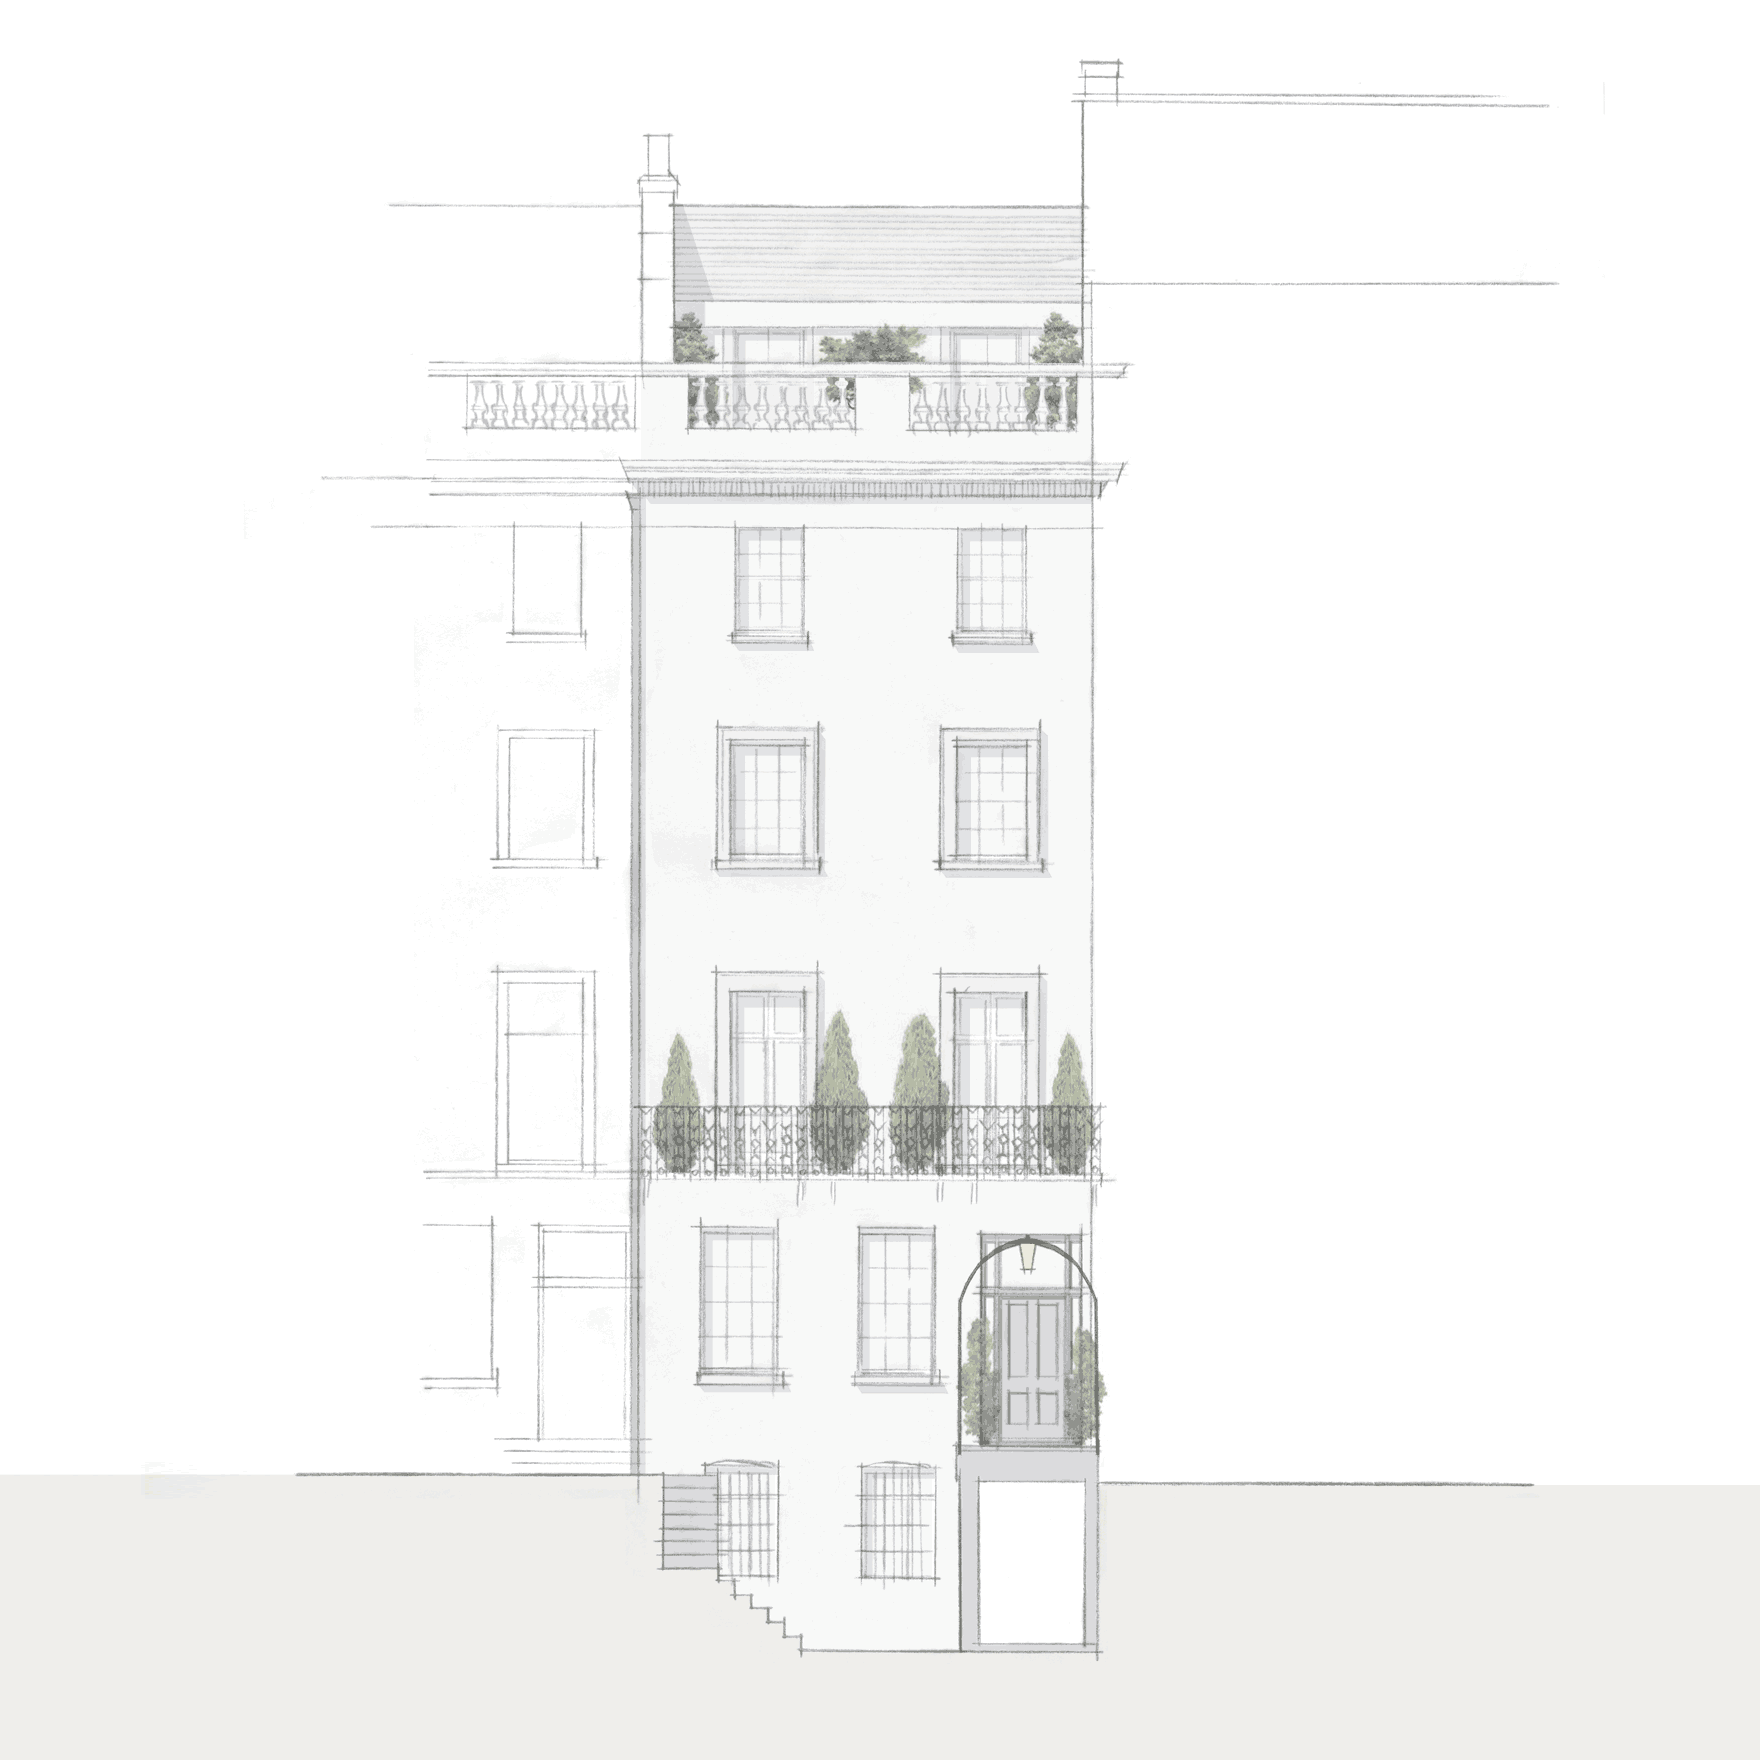 Knightsbridge sketch showing the front elevation